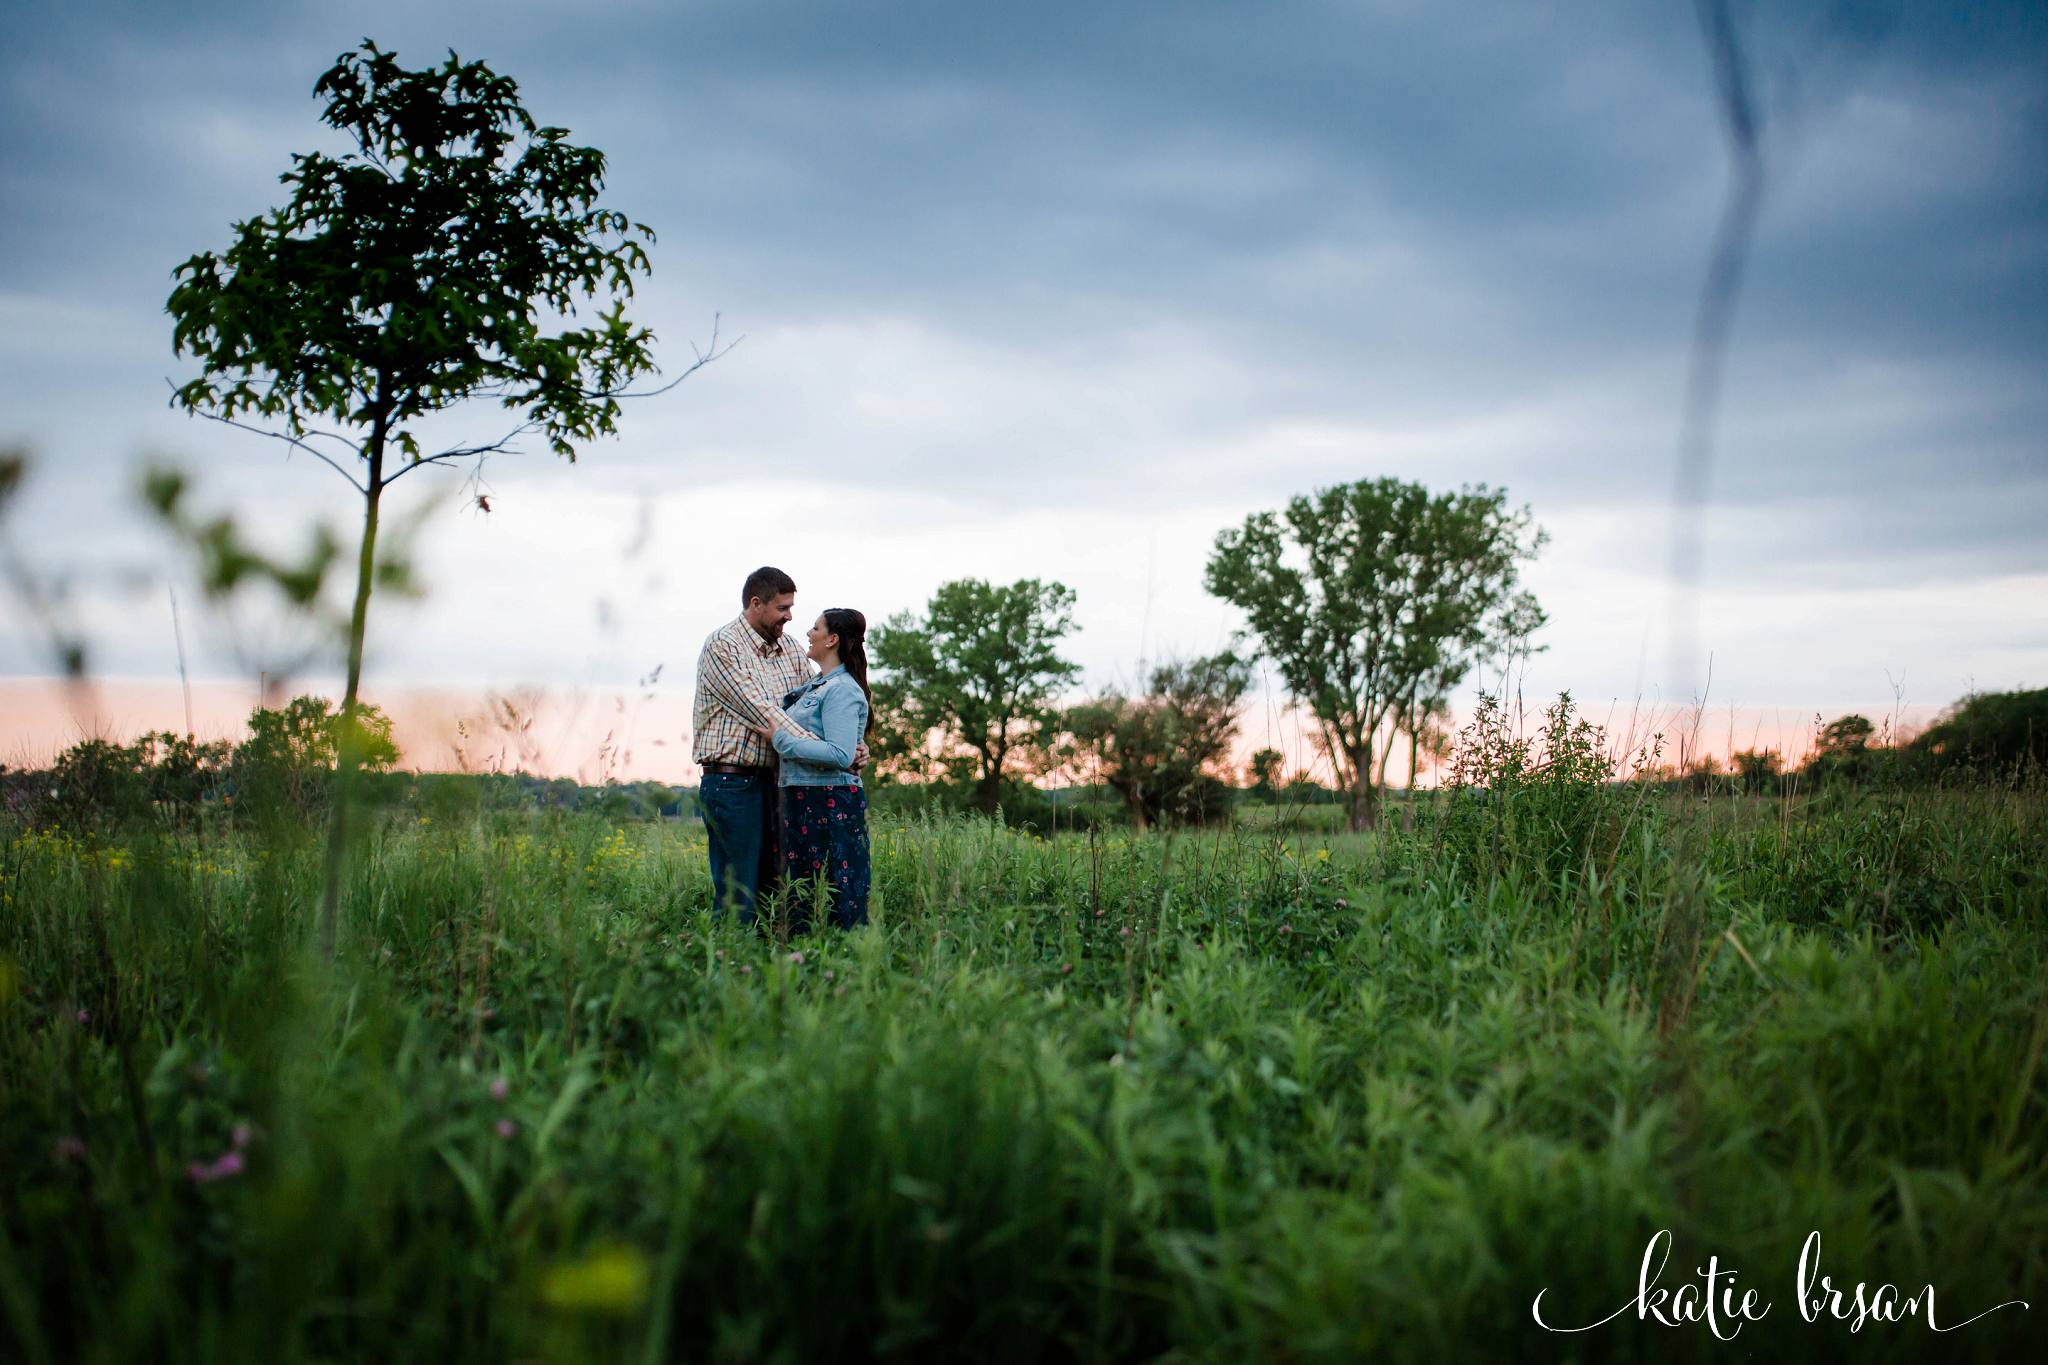 KatieBrsan-HomerGlen-NewLenox-EngagementSession-HadleyValley-TeacherEngagementSession-ChicagoWeddingPhotographer_0591.jpg